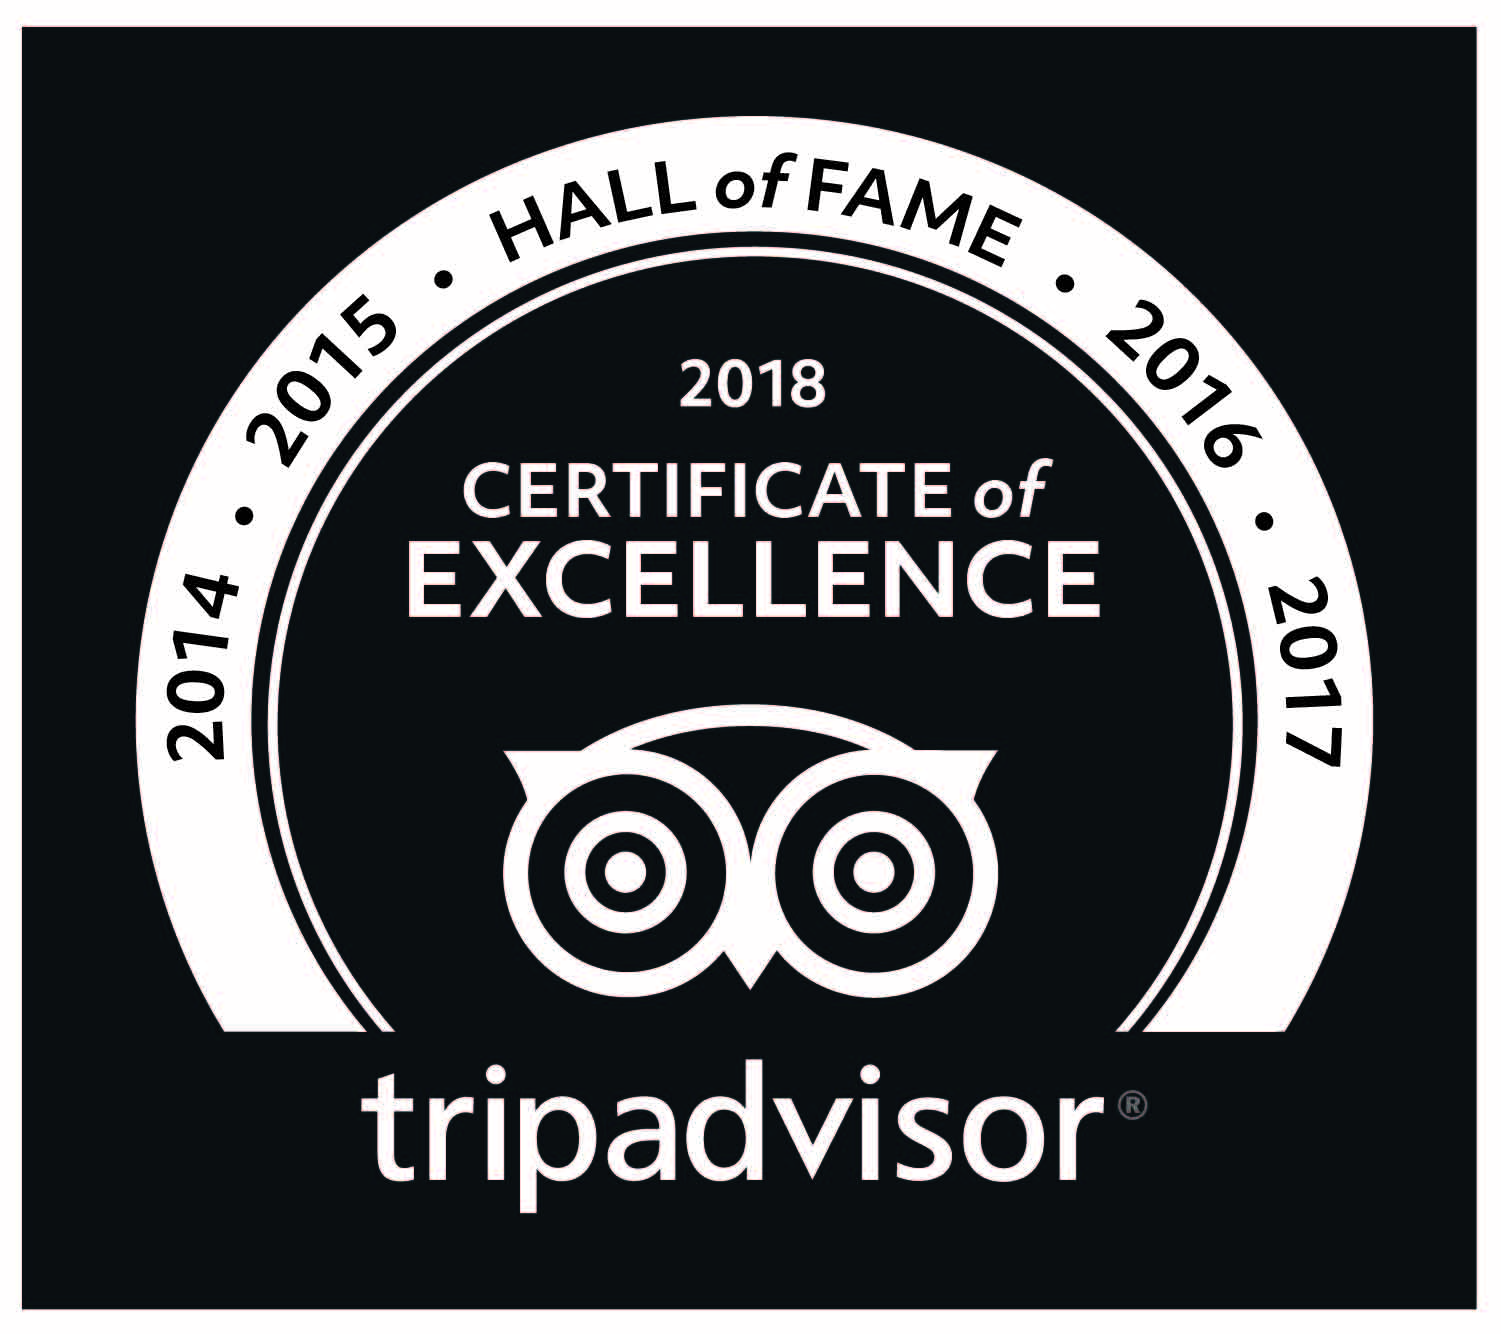 Barcelona Photography Tours receives the 2018 TripAdvisor certificate of excellence award.